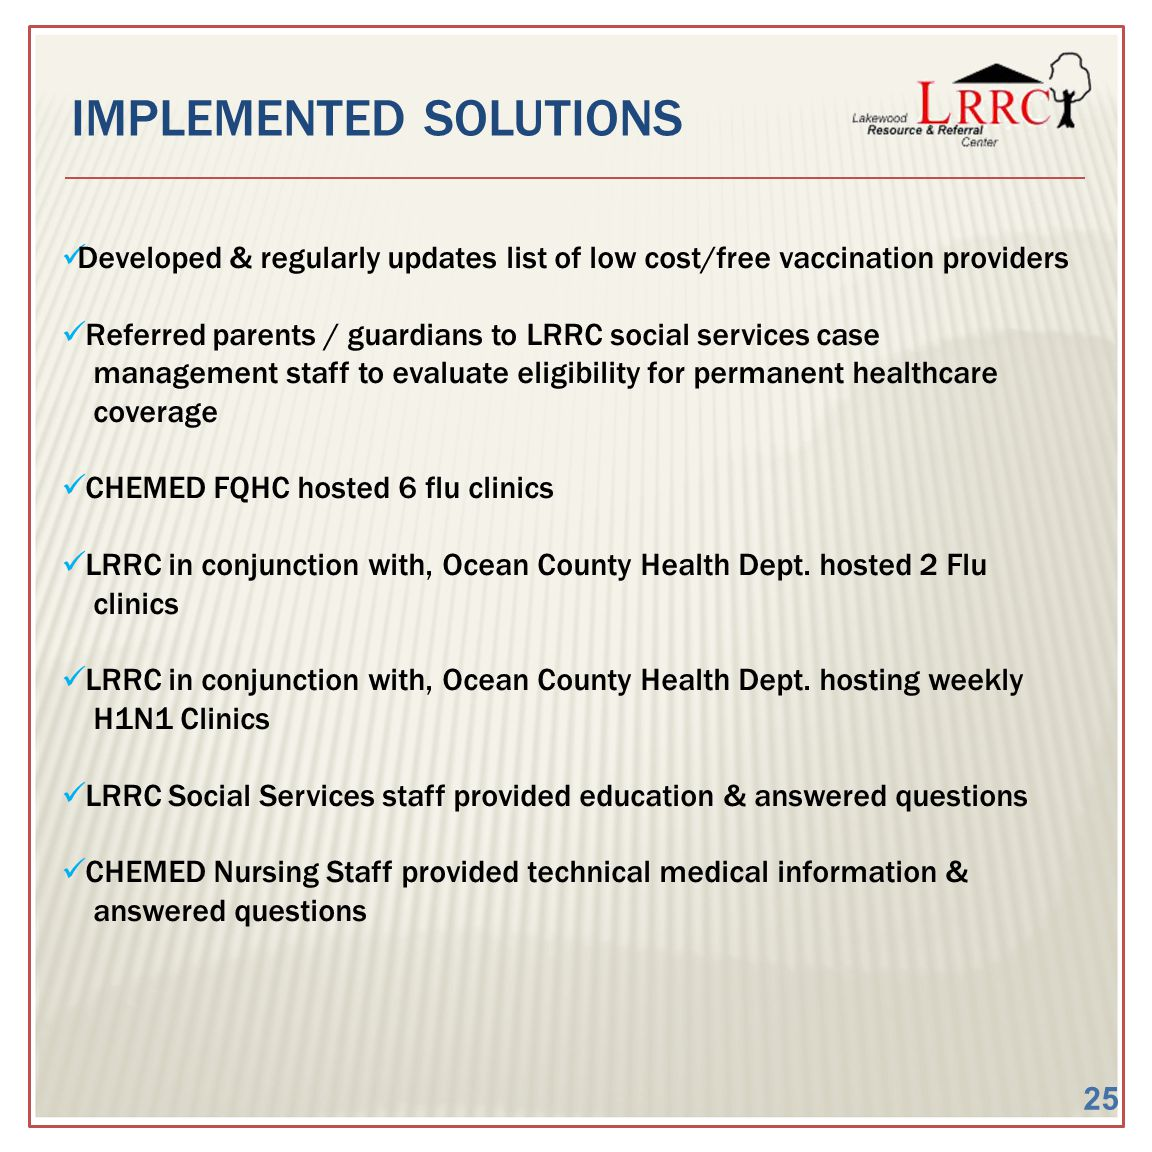 IMPLEMENTED SOLUTIONS Developed & regularly updates list of low cost/free vaccination providers Referred parents / guardians to LRRC social services c